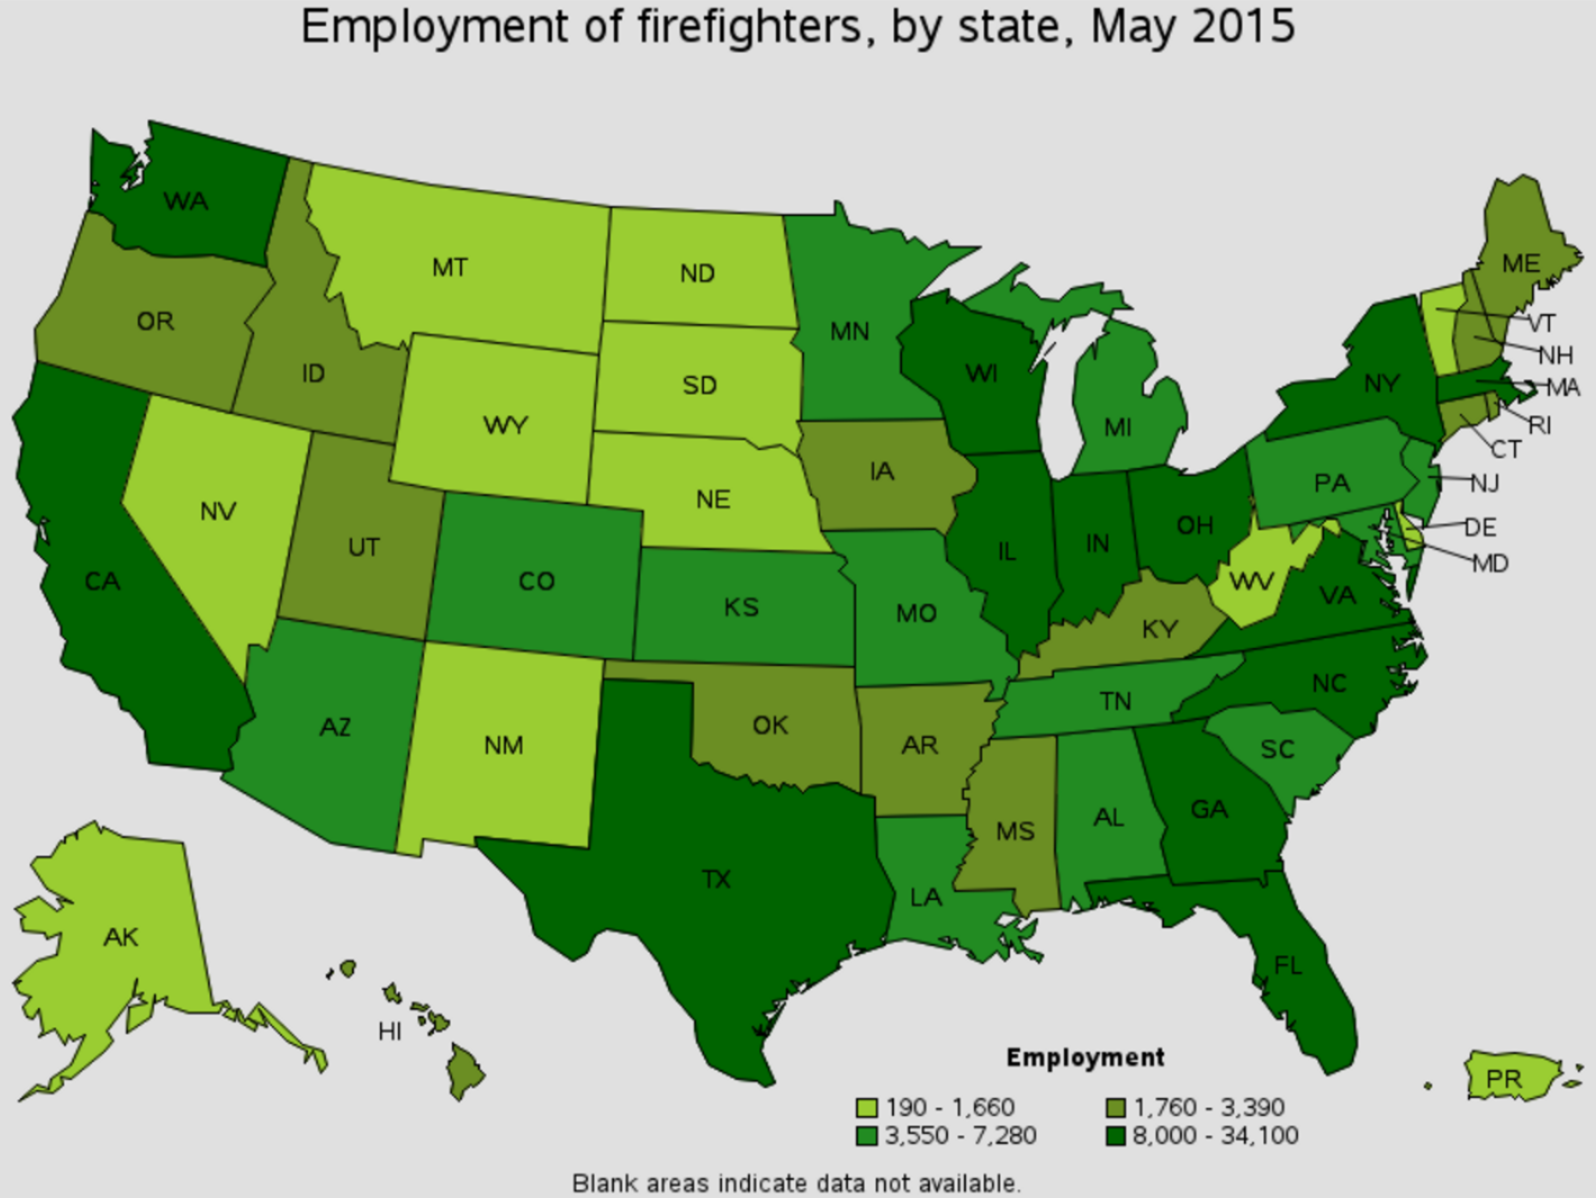 firefighter job outlook by state Winlock Washington